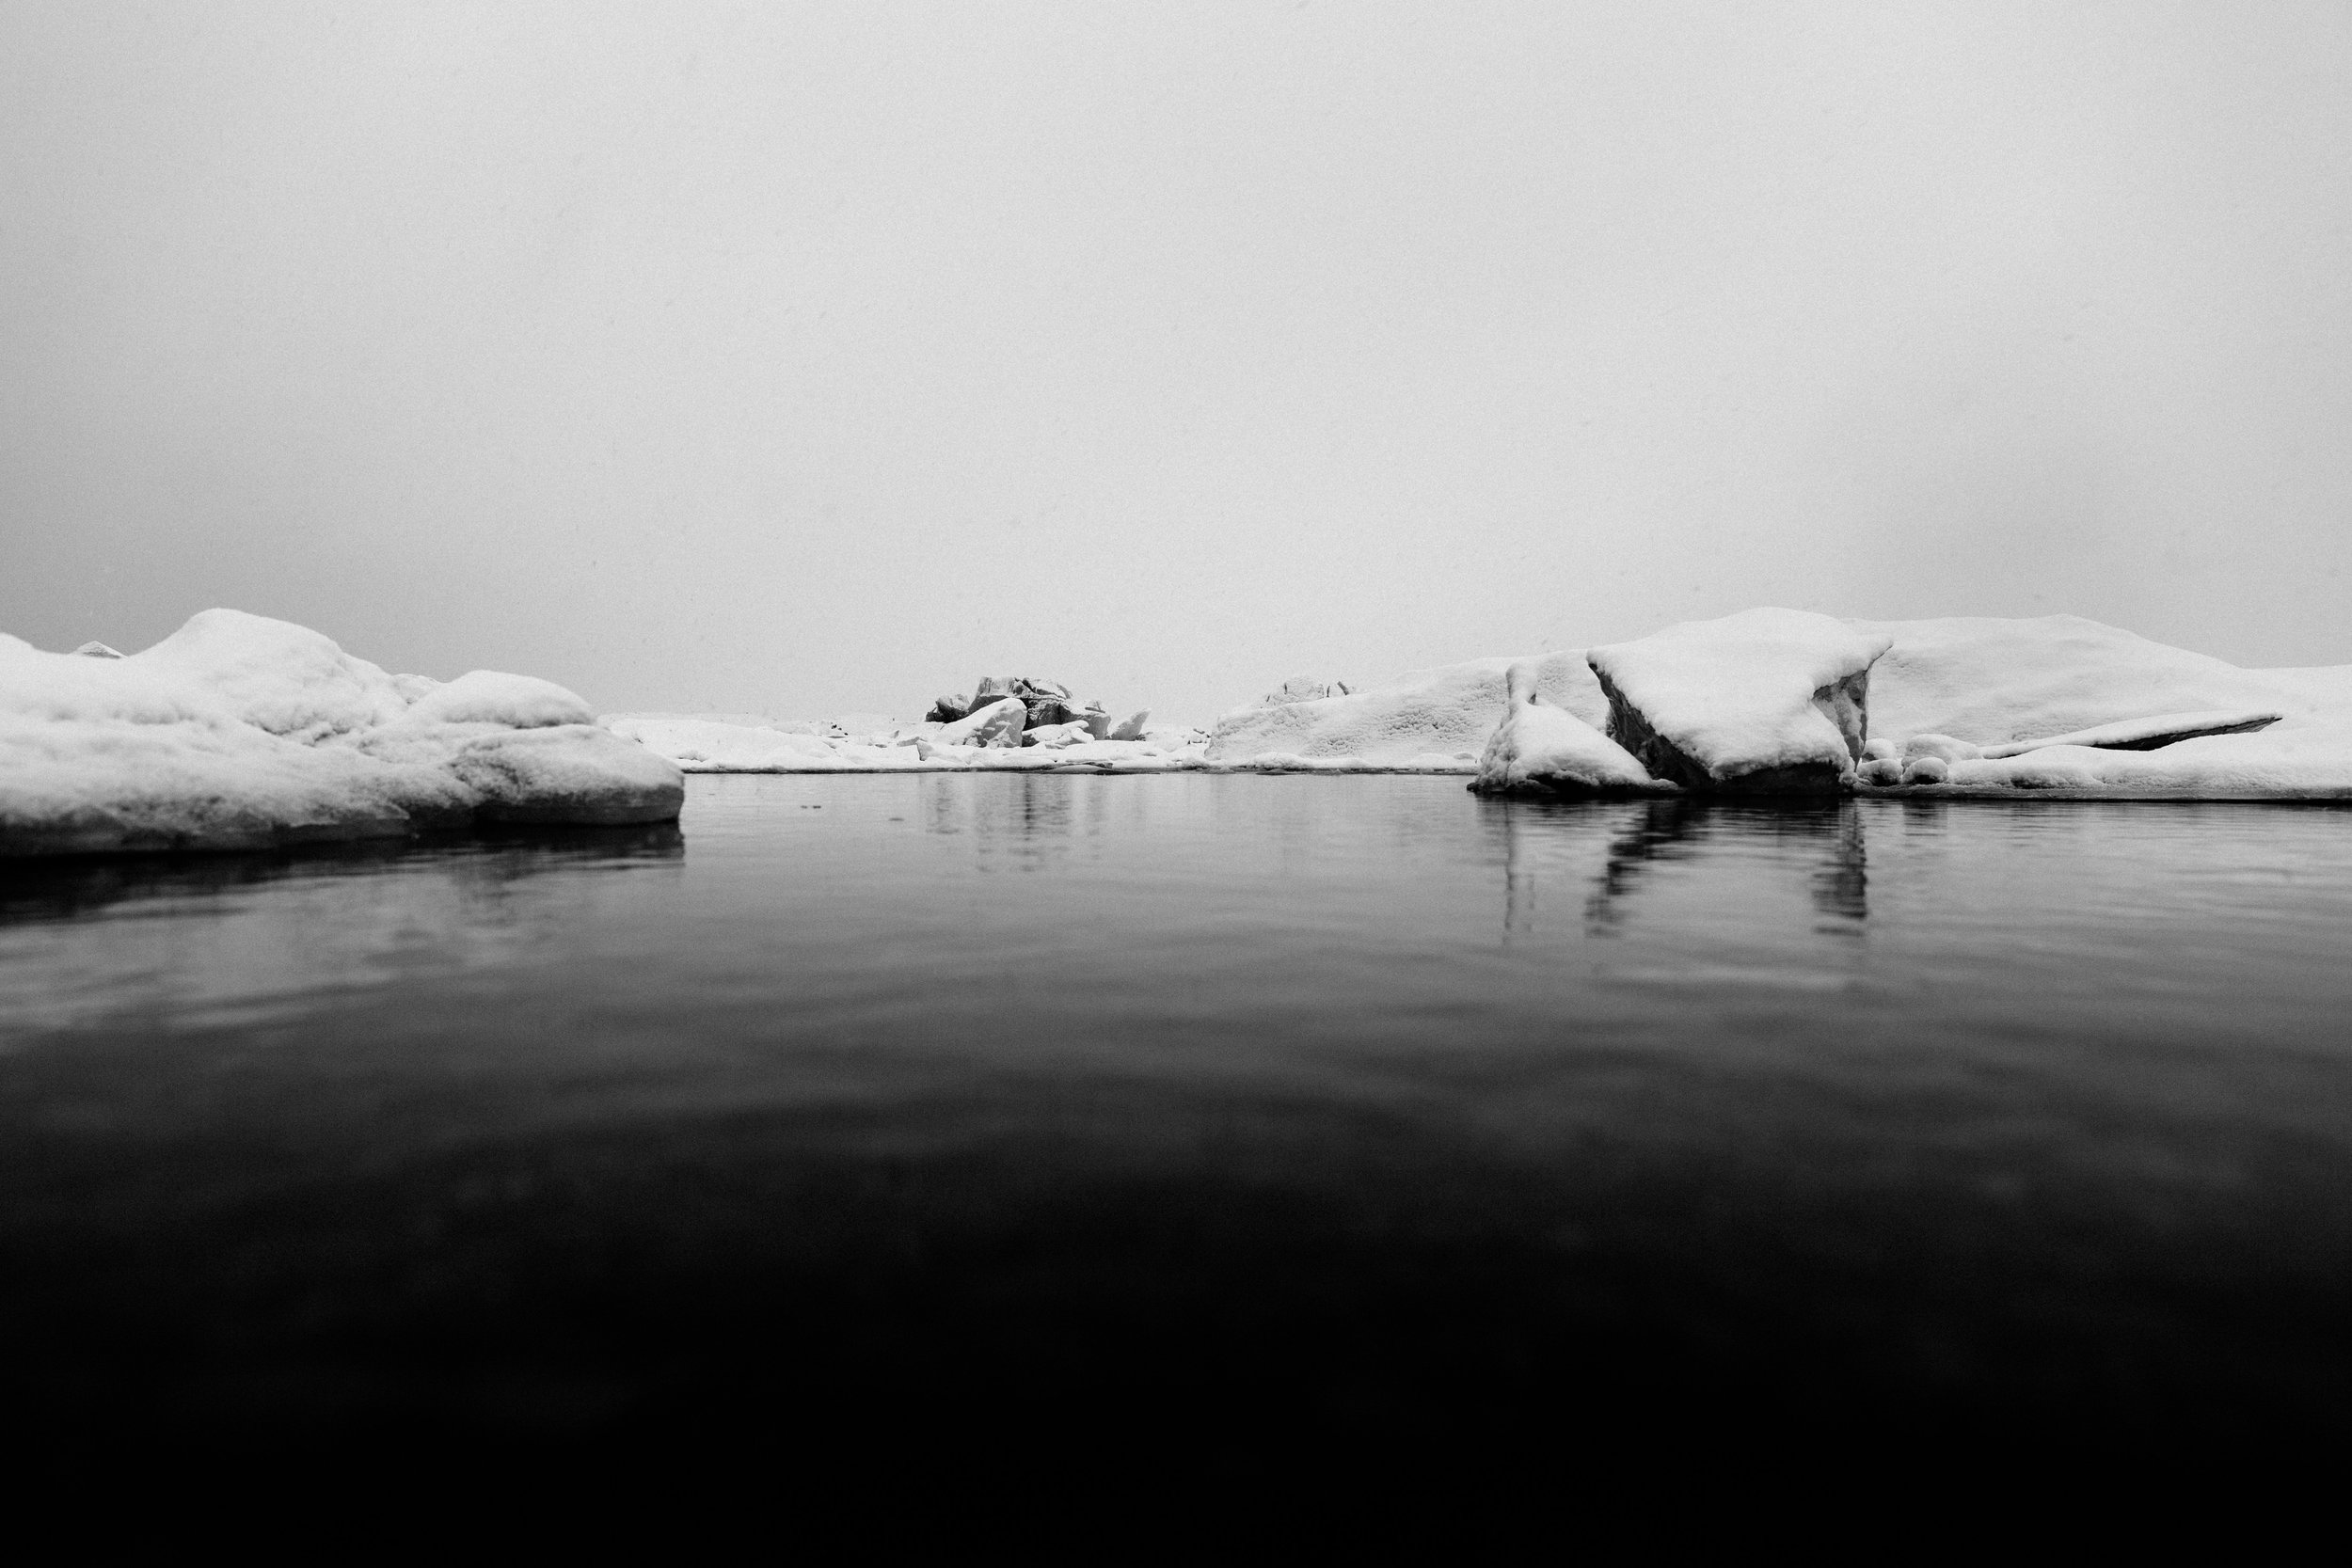 picography-lake-ice-winter-water-snow-cold-frozen.jpg